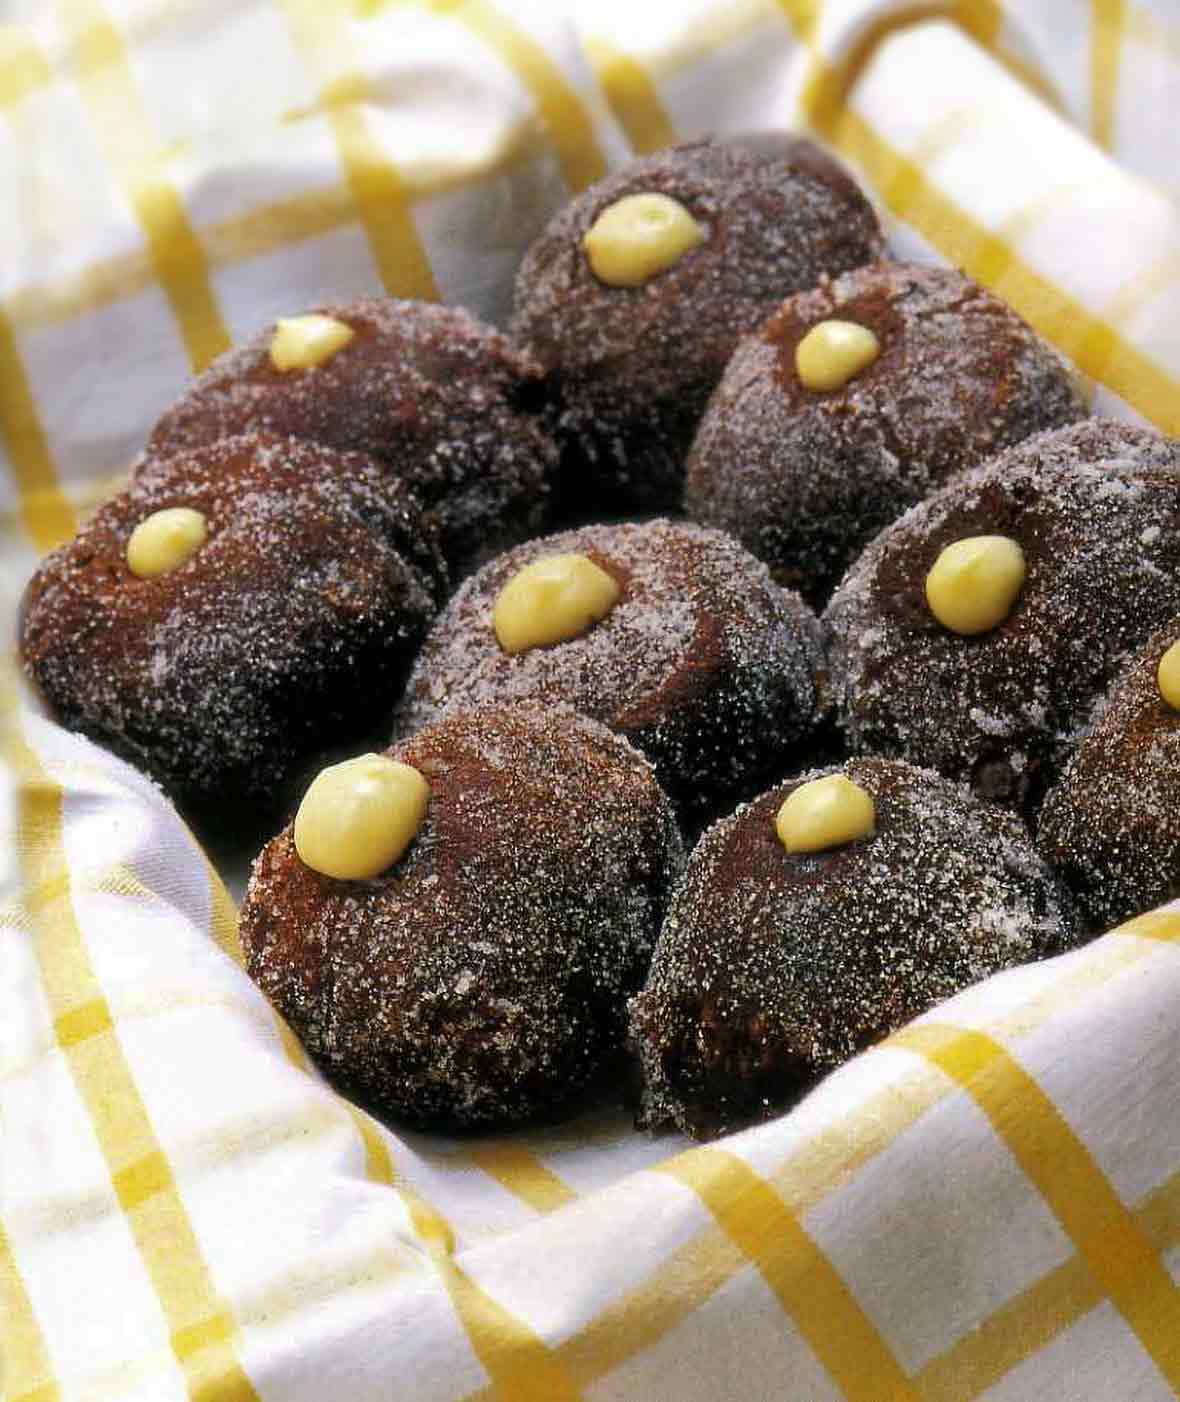 Napkin-lined basket of 9 cream-filled chocolate doughnuts with a dot of pastry cream on each